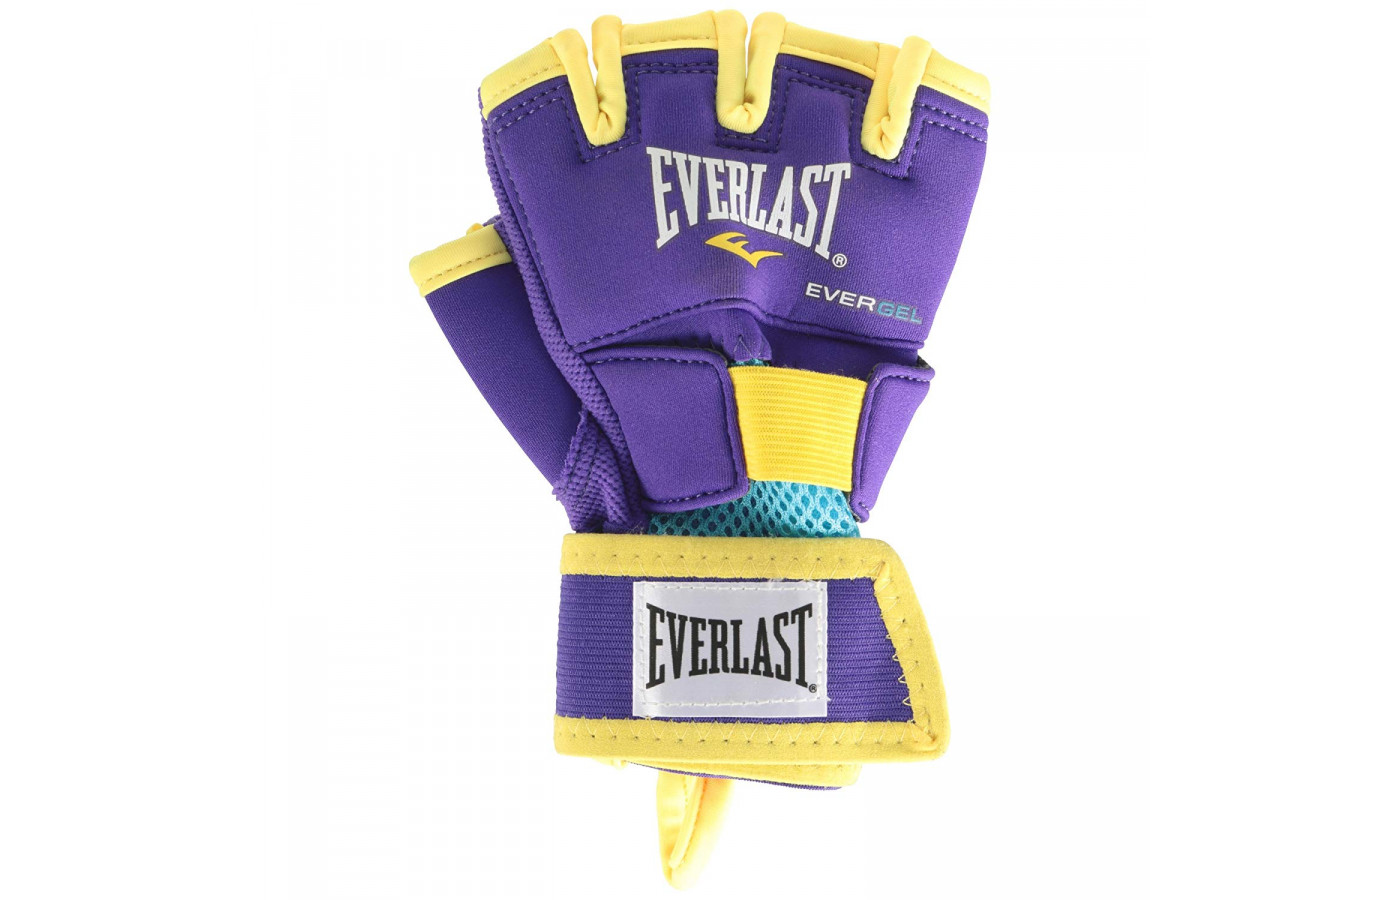 everlast gel wraps purple and yellow